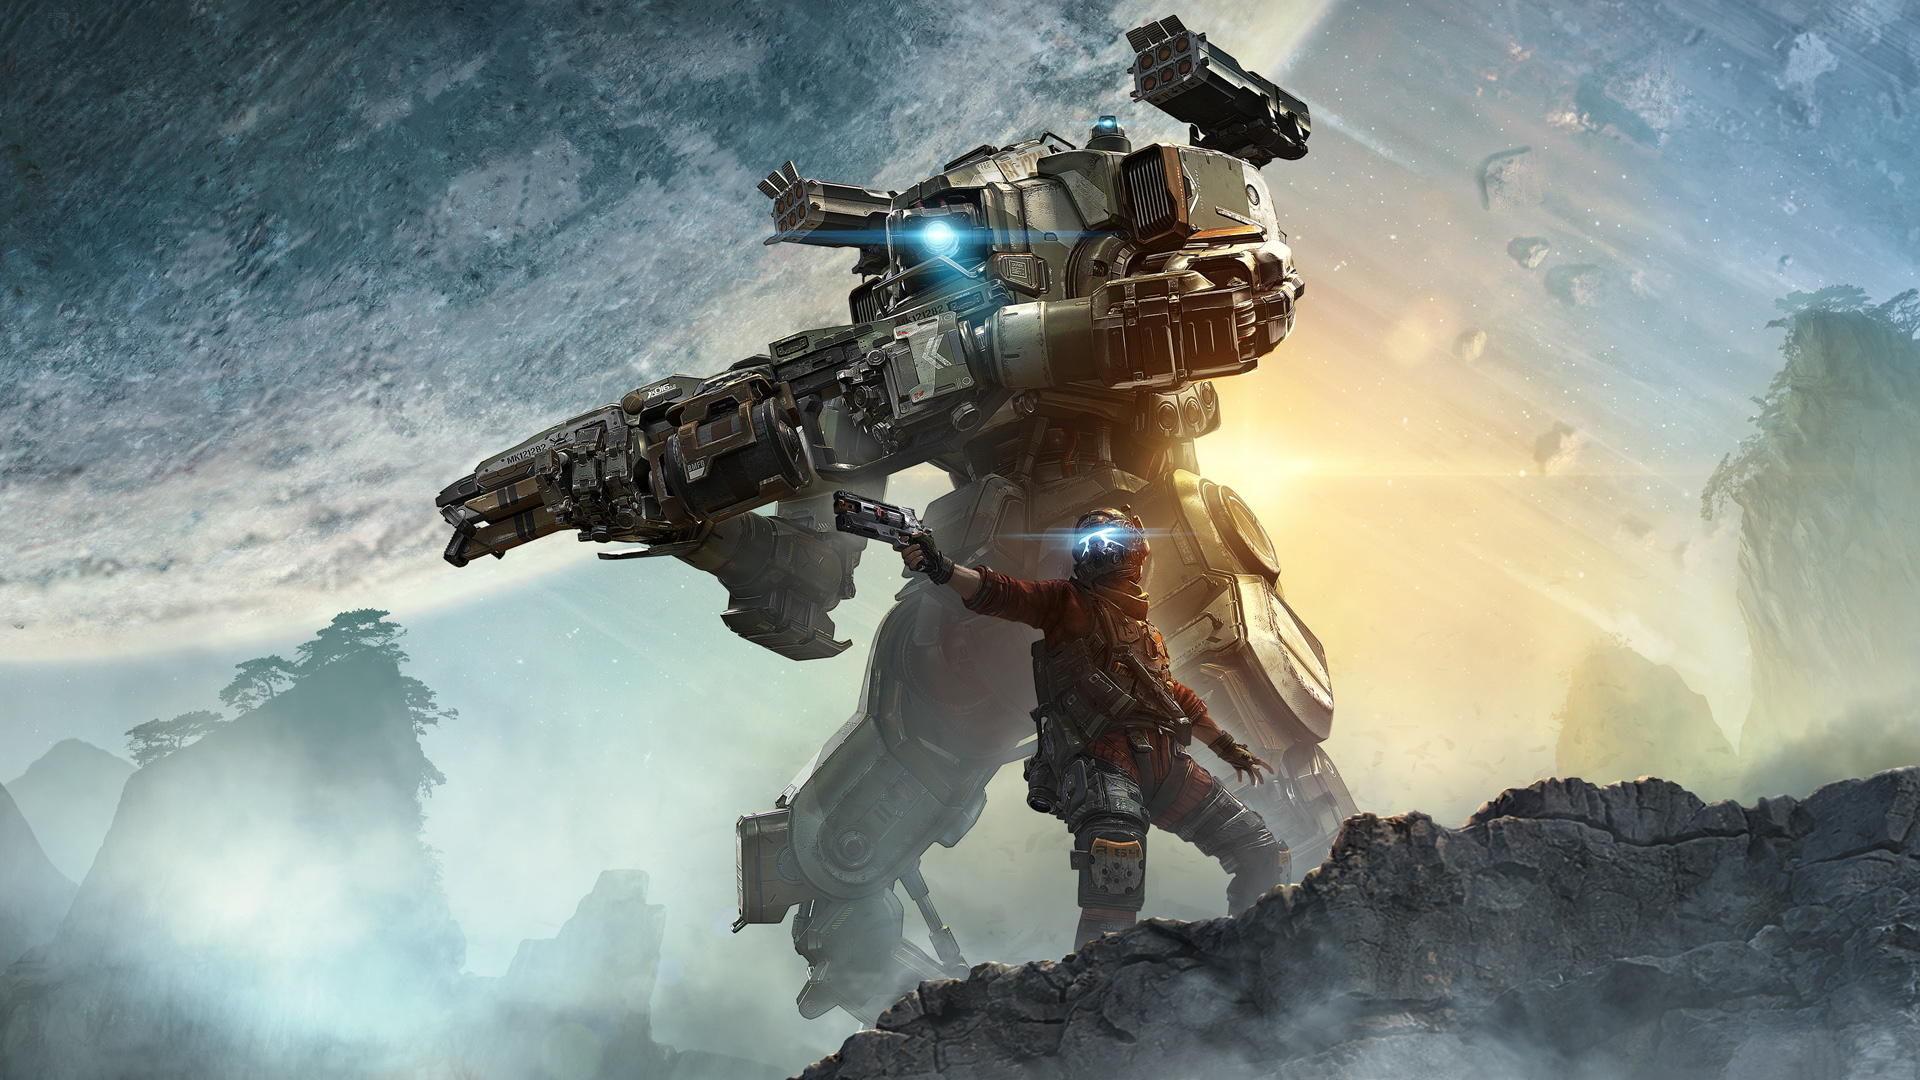 Find the Top Titanfall 2 Wallpaper Ideas For Your Computer